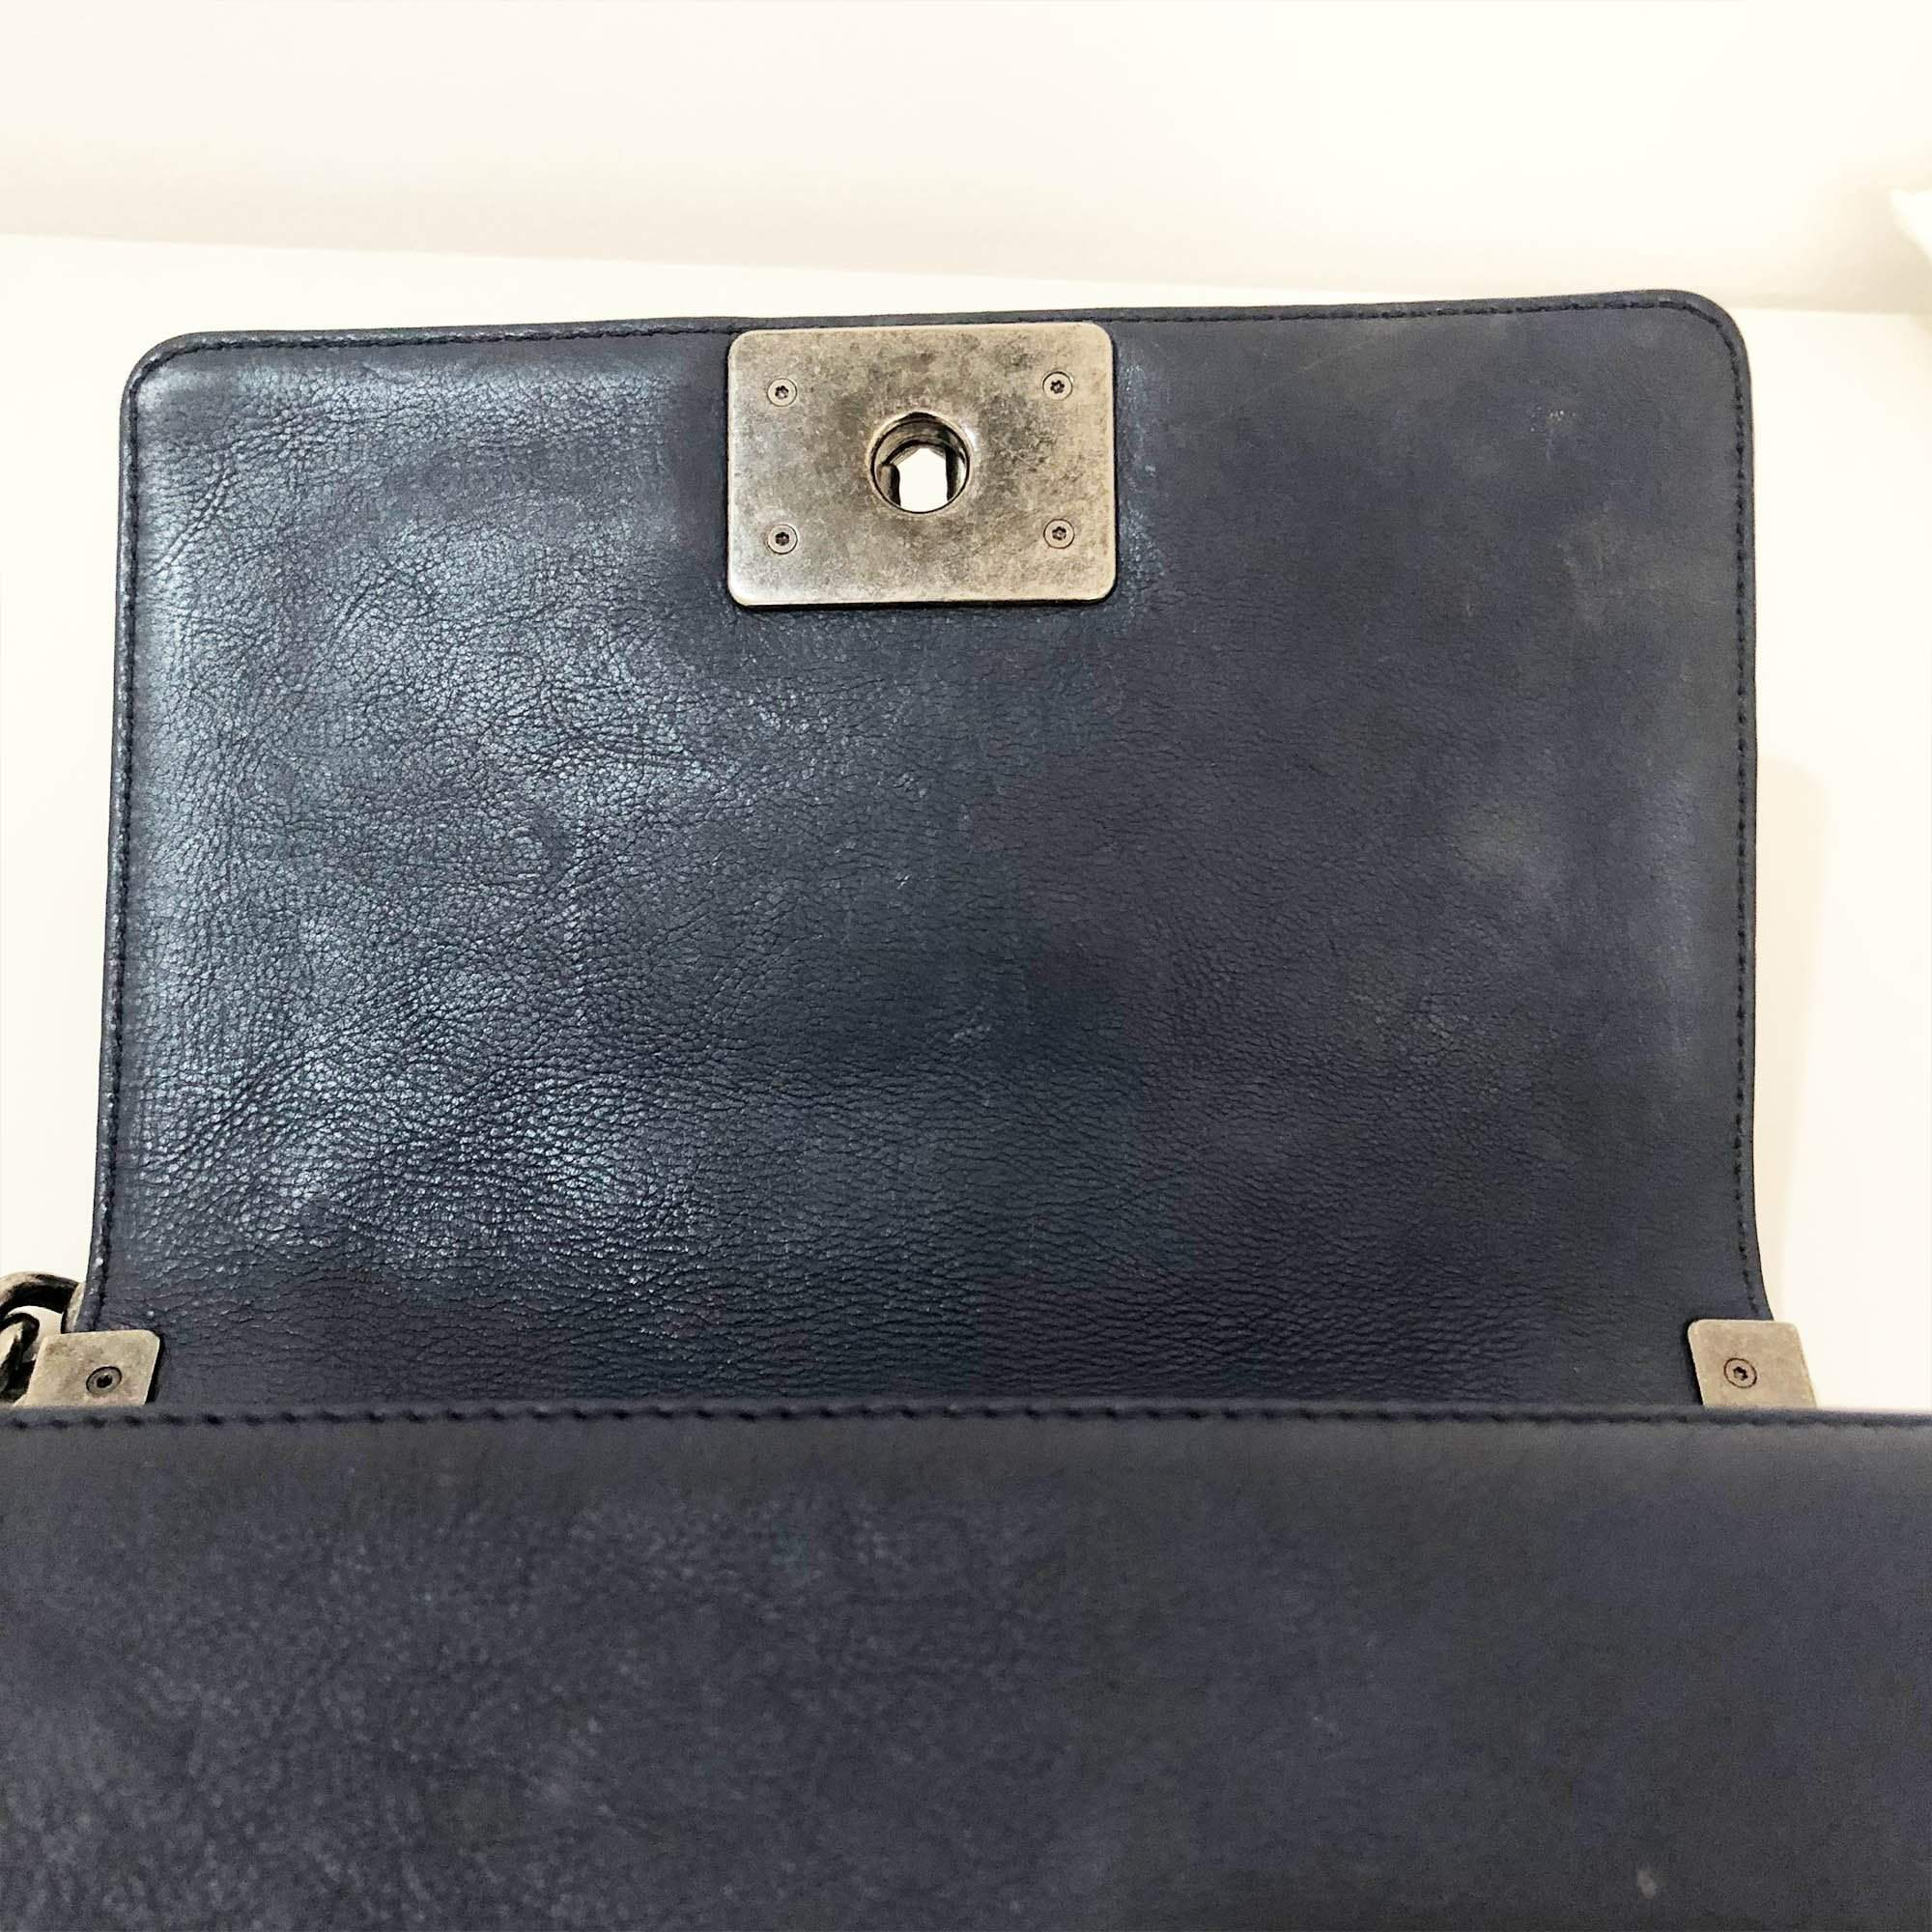 Chanel Le Boy Small Blue Leather Bag